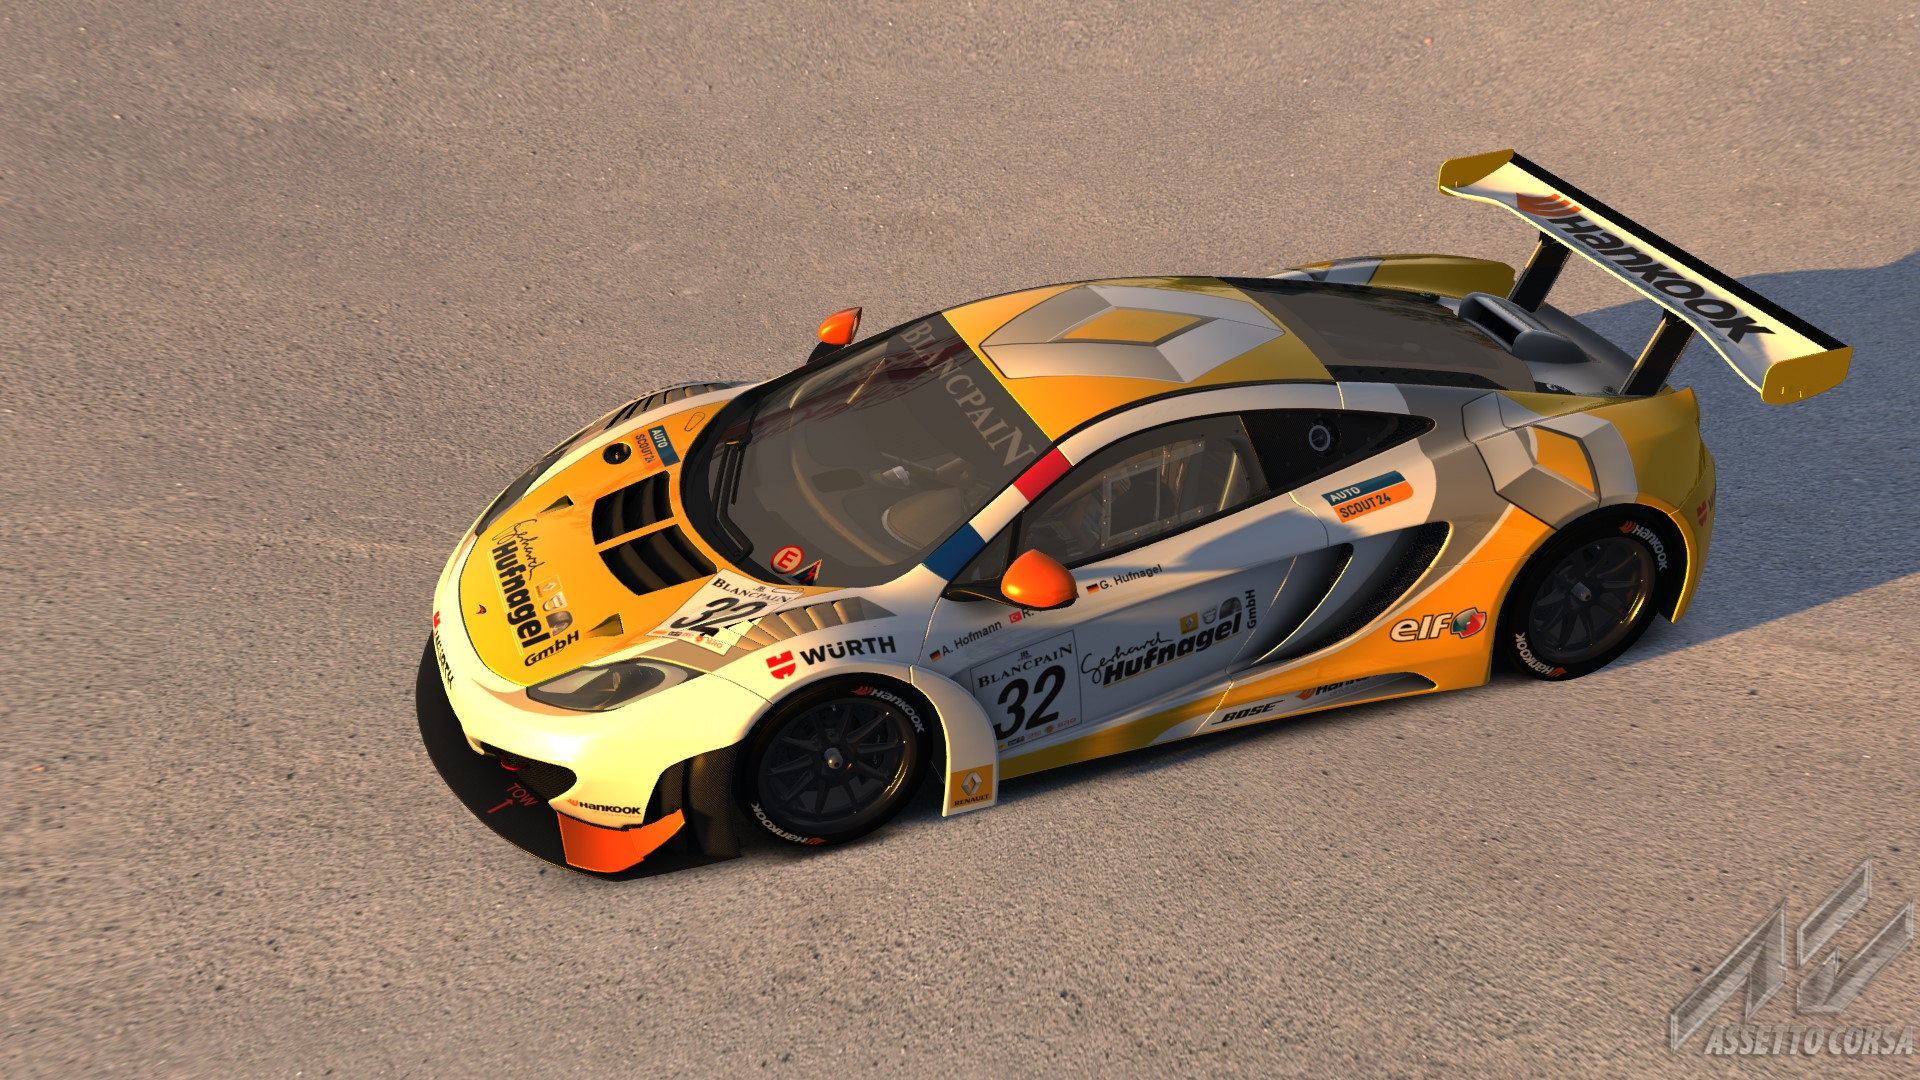 Showroom_mclaren_mp412c_gt3_27-9-2014-23-1-5.jpg